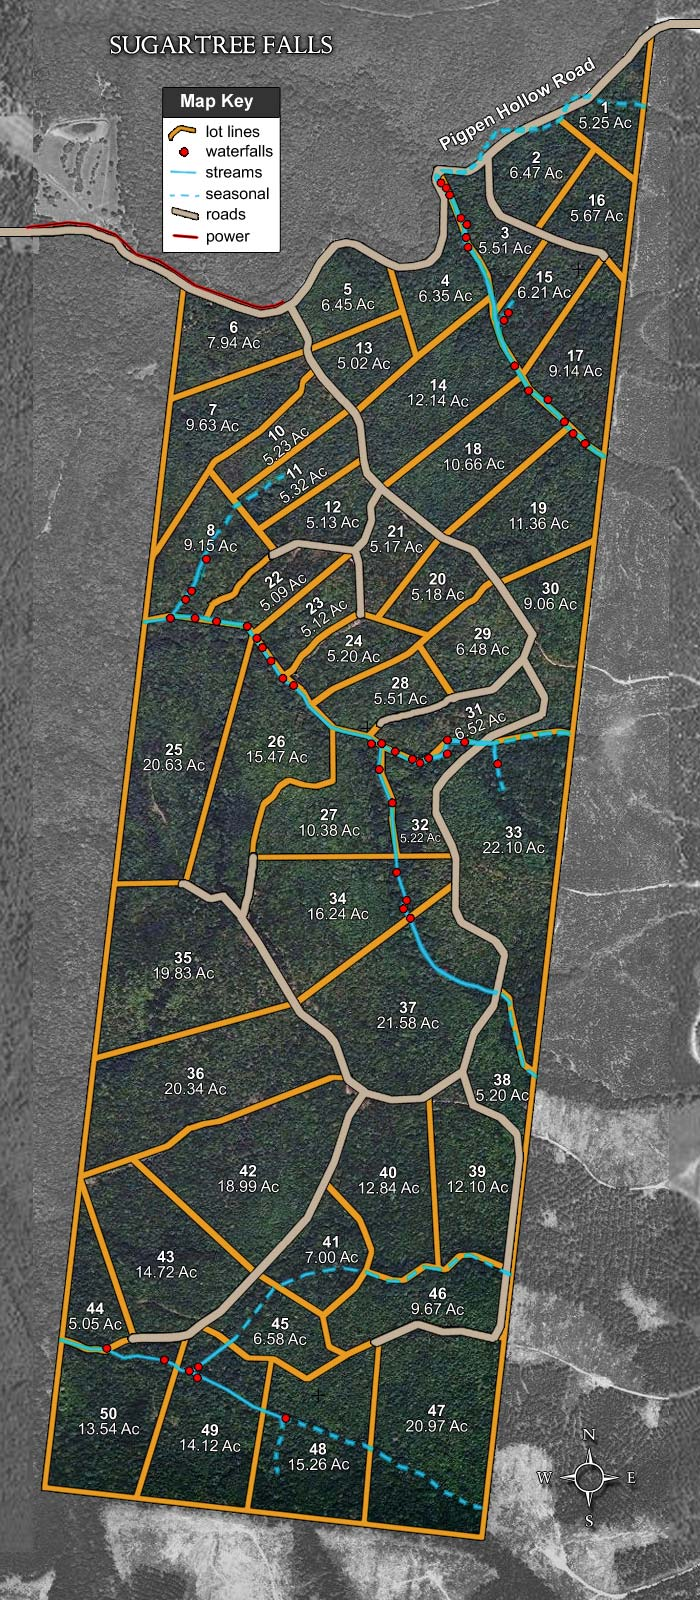 7.94 acres of Residential Land for sale. Pigpen Hollow Road, Sugartree Falls, TN